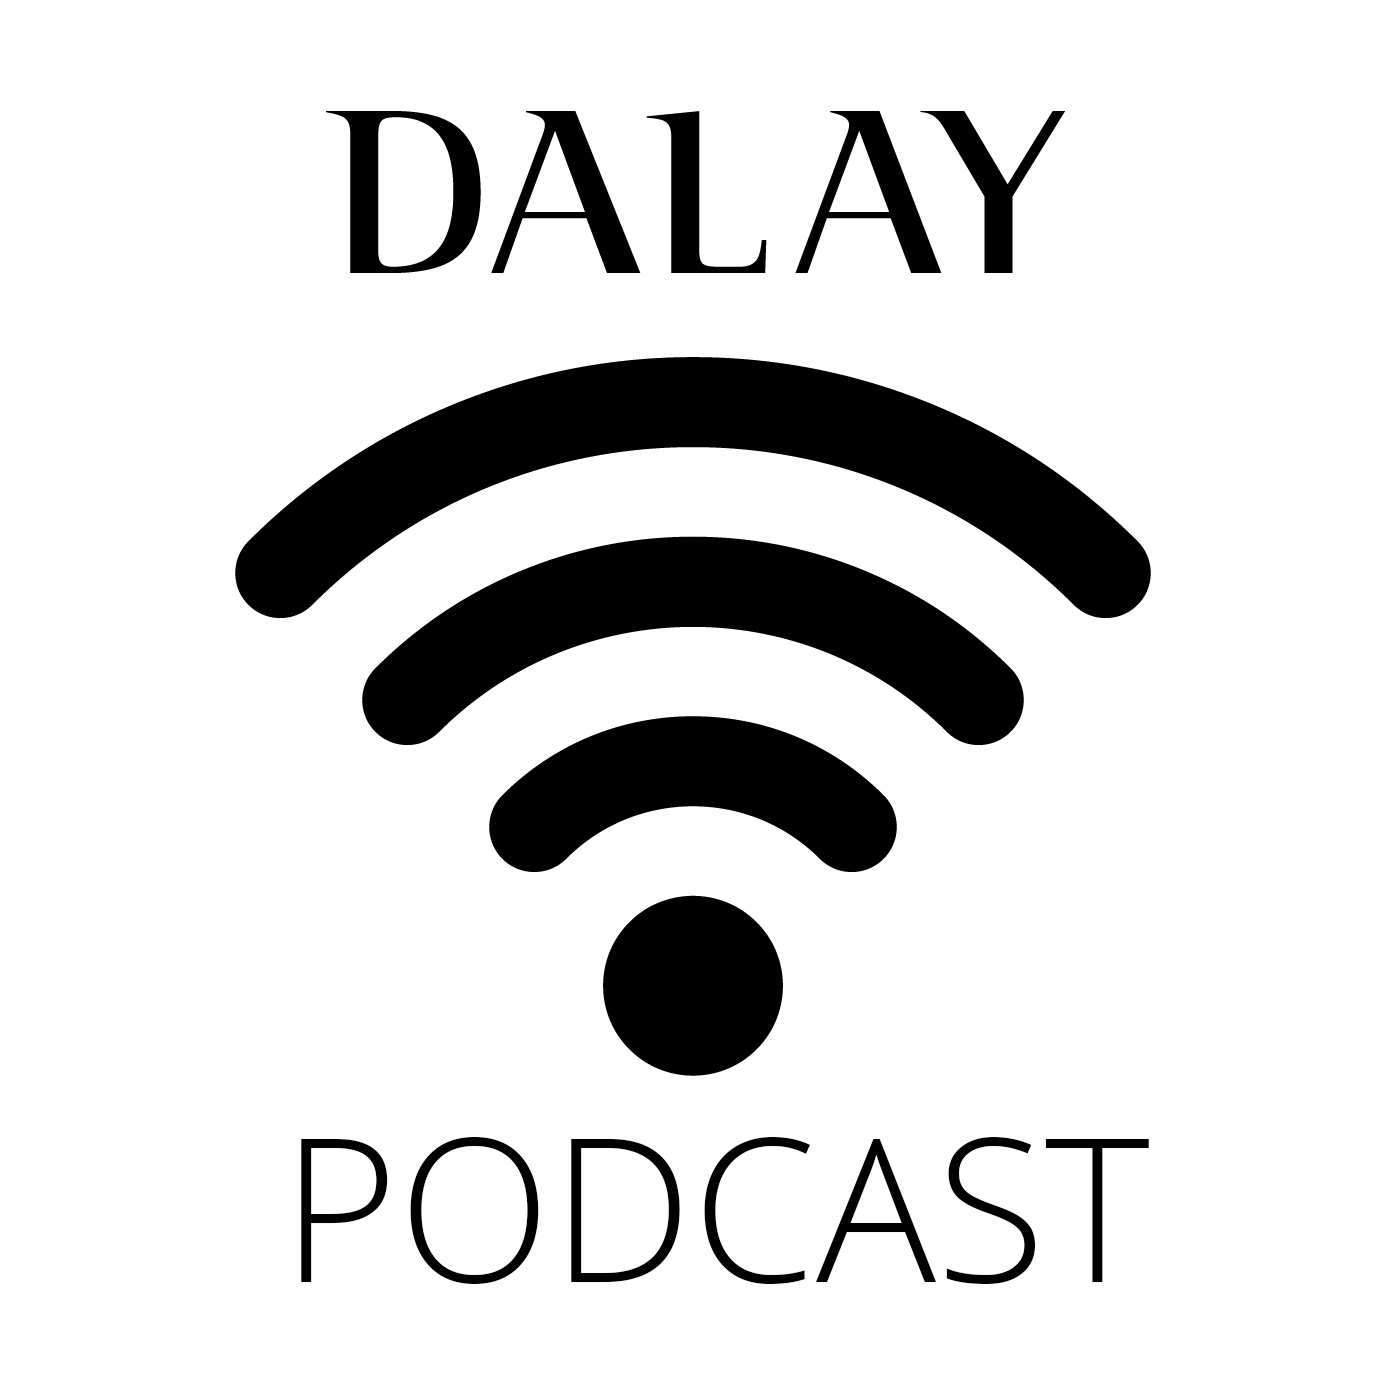 Dalay Podcast